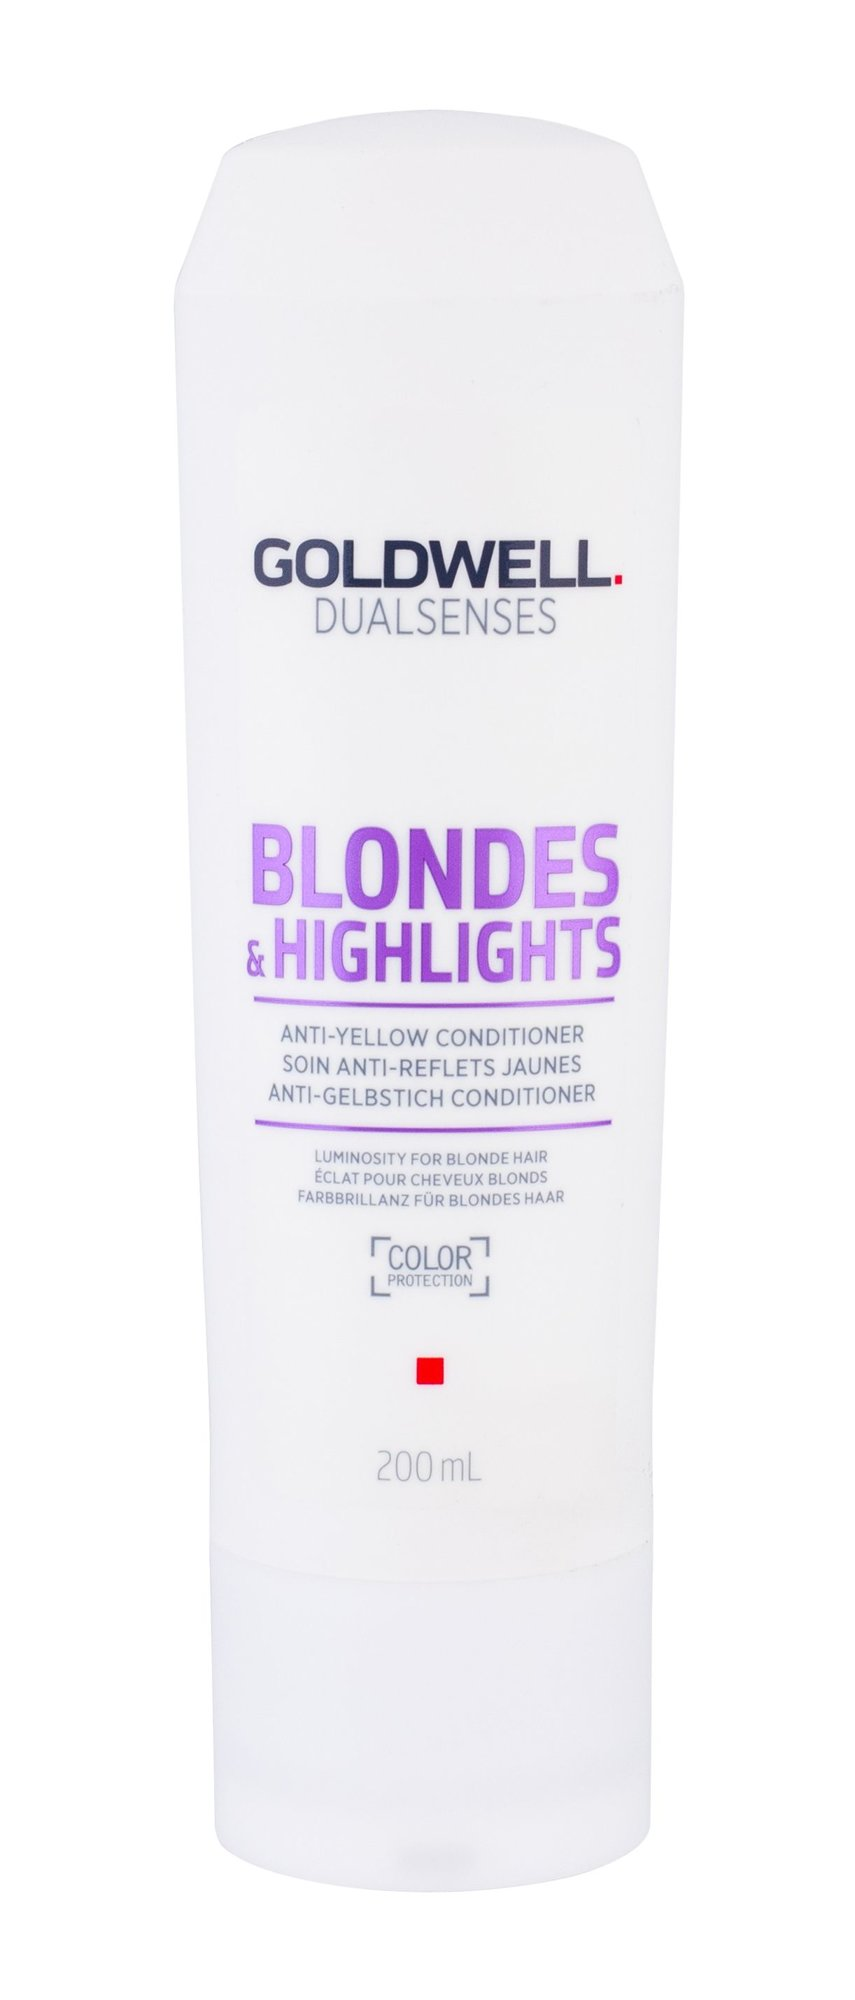 Goldwell Dualsenses Blondes Highlights Cosmetic 200ml